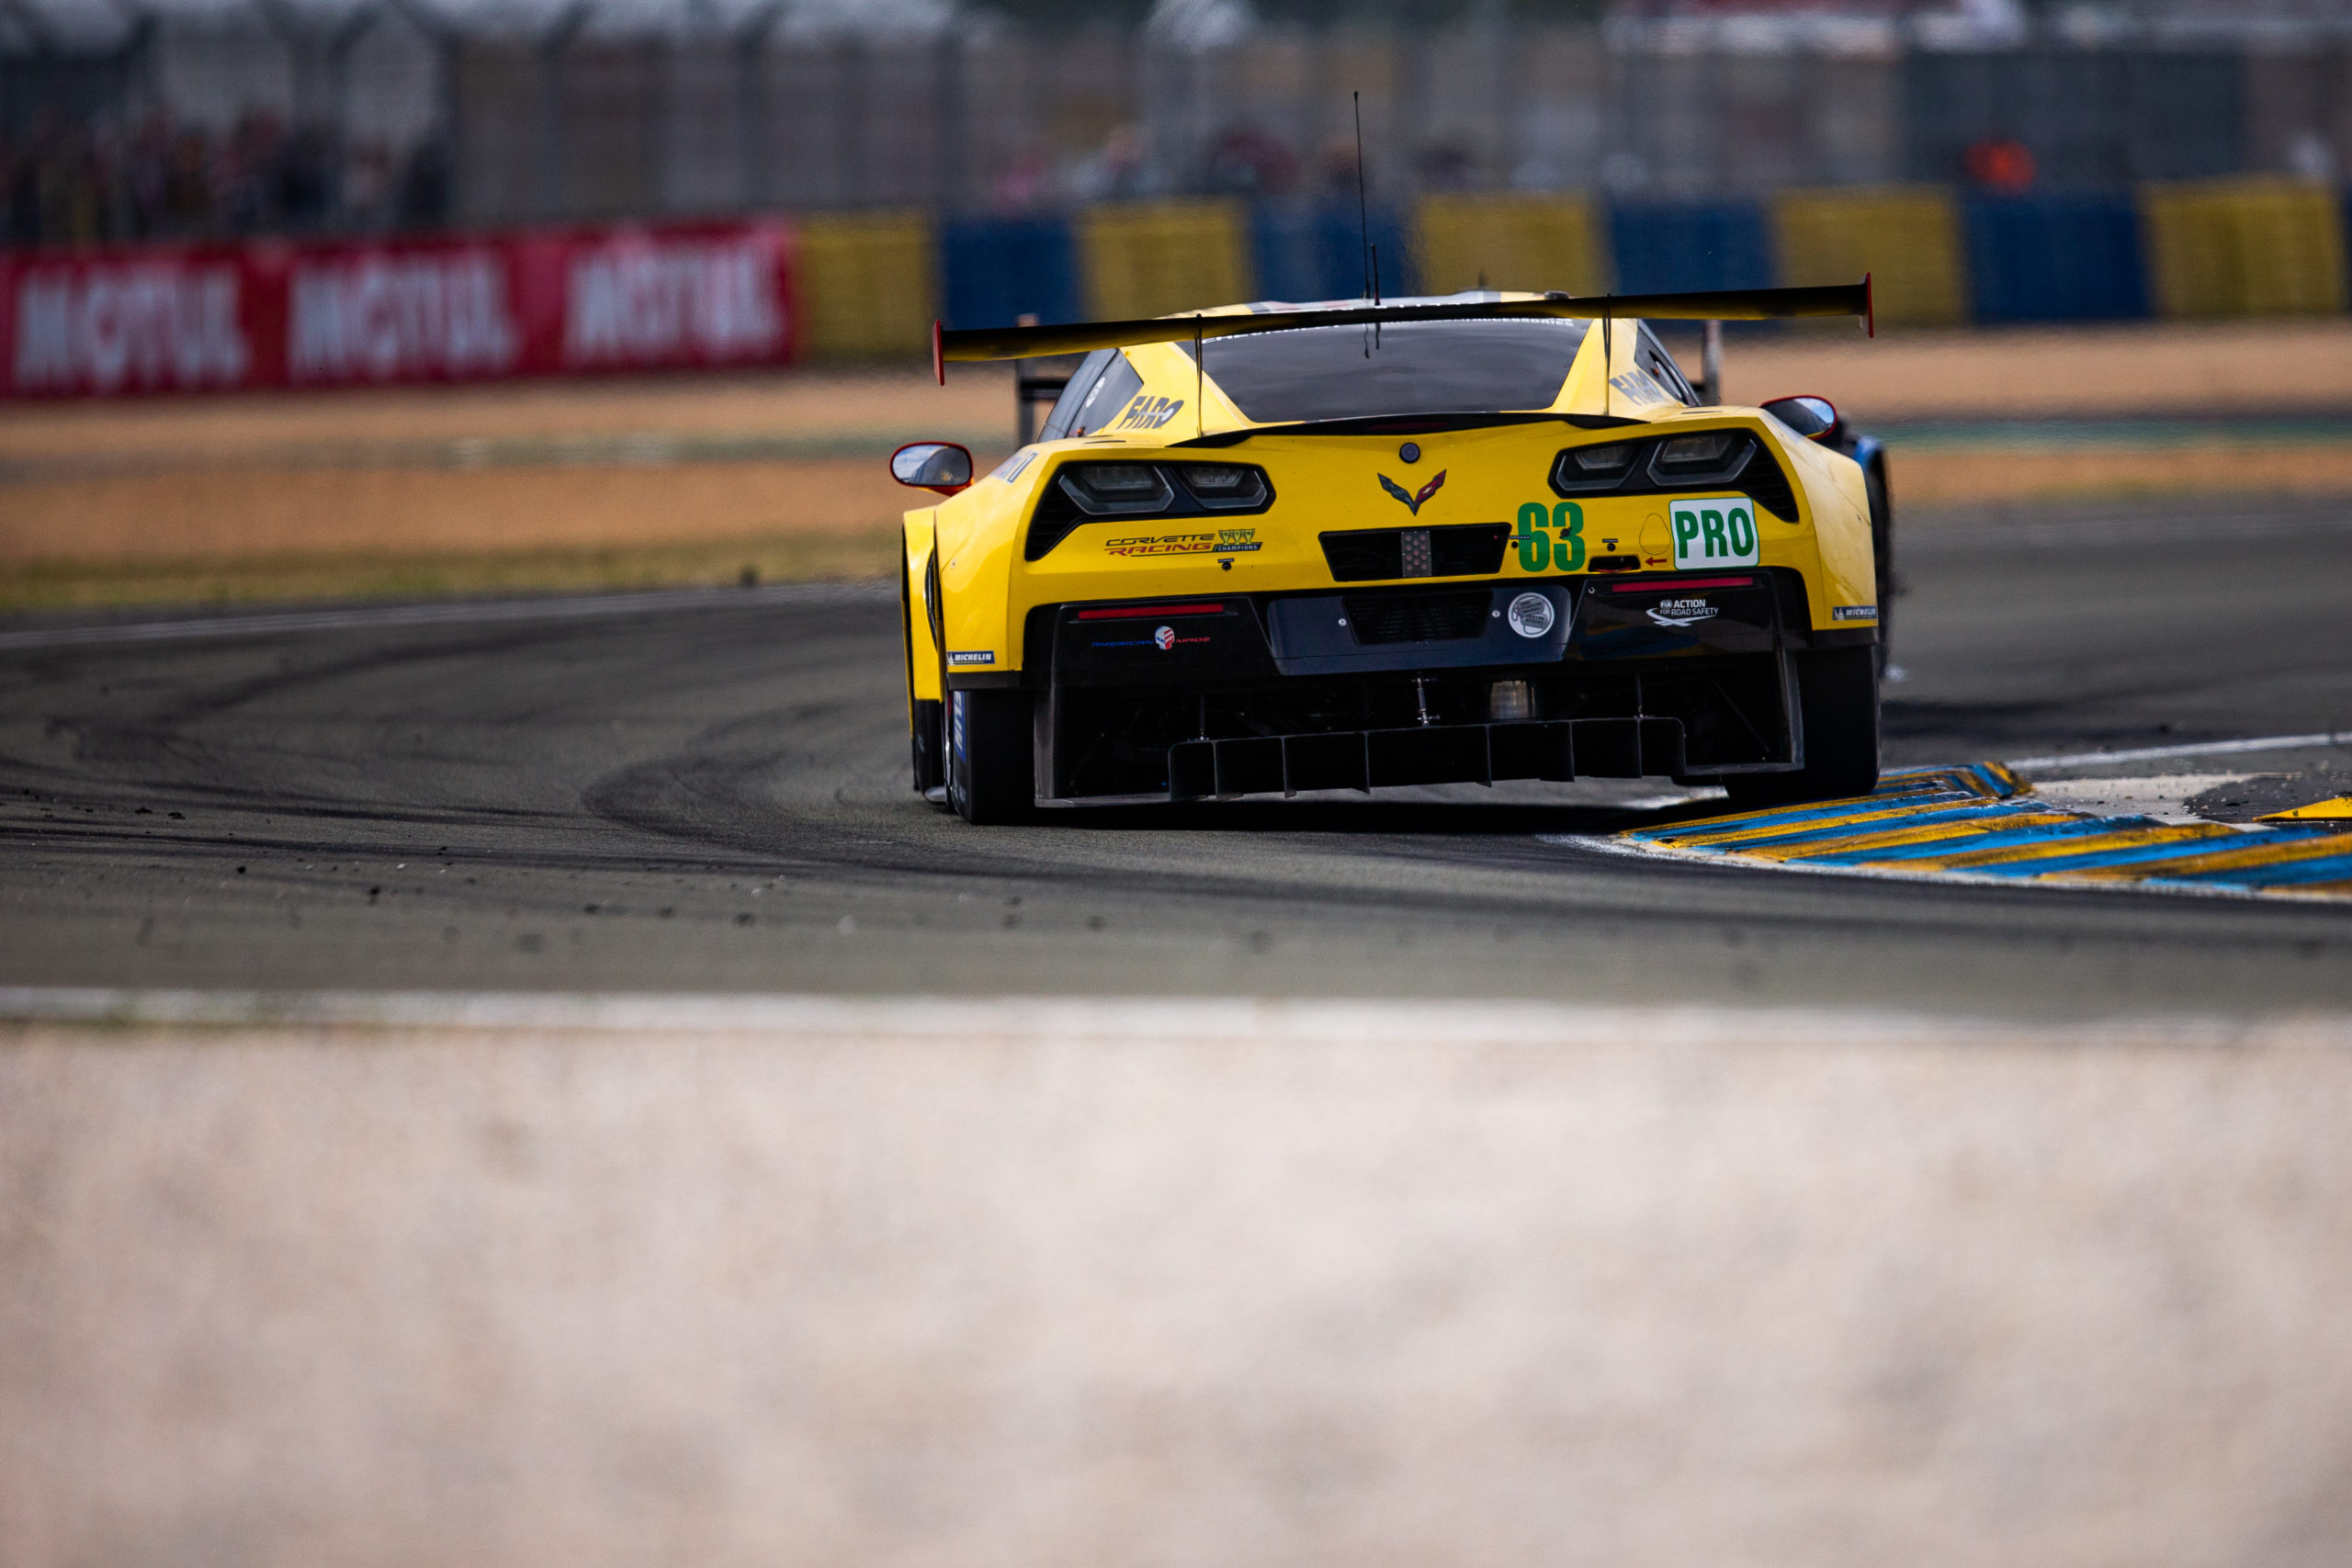 #63 CORVETTE RACING-GM / Chevrolet Corvette C7.R - 24 hours of Le Mans - Circuit de la Sarthe - Le Mans - France, WEC, IMSA